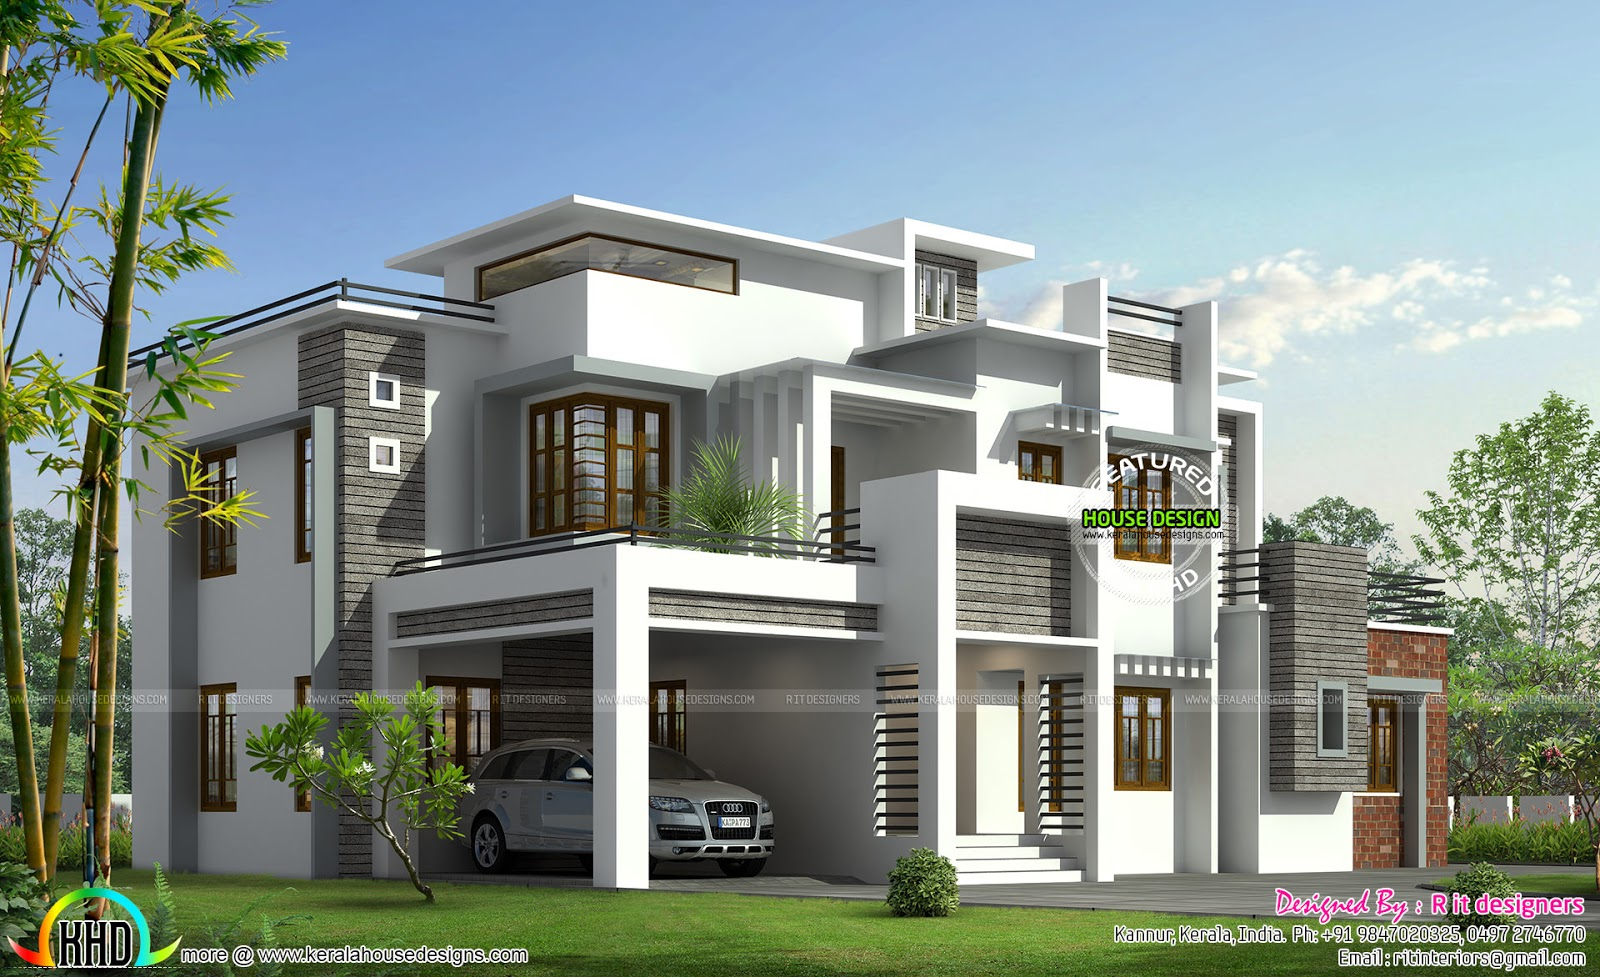 Box model contemporary house kerala home design and for Small contemporary house plans in kerala